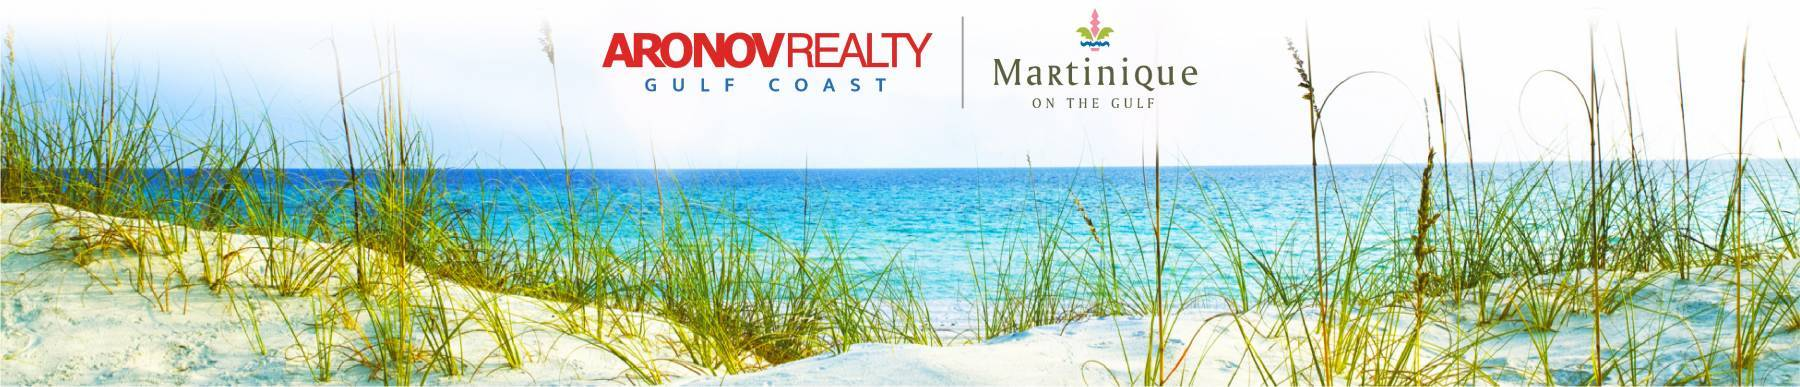 Aronov Realty Gulf Coast Vacation Rentals Martinique on the Gulr